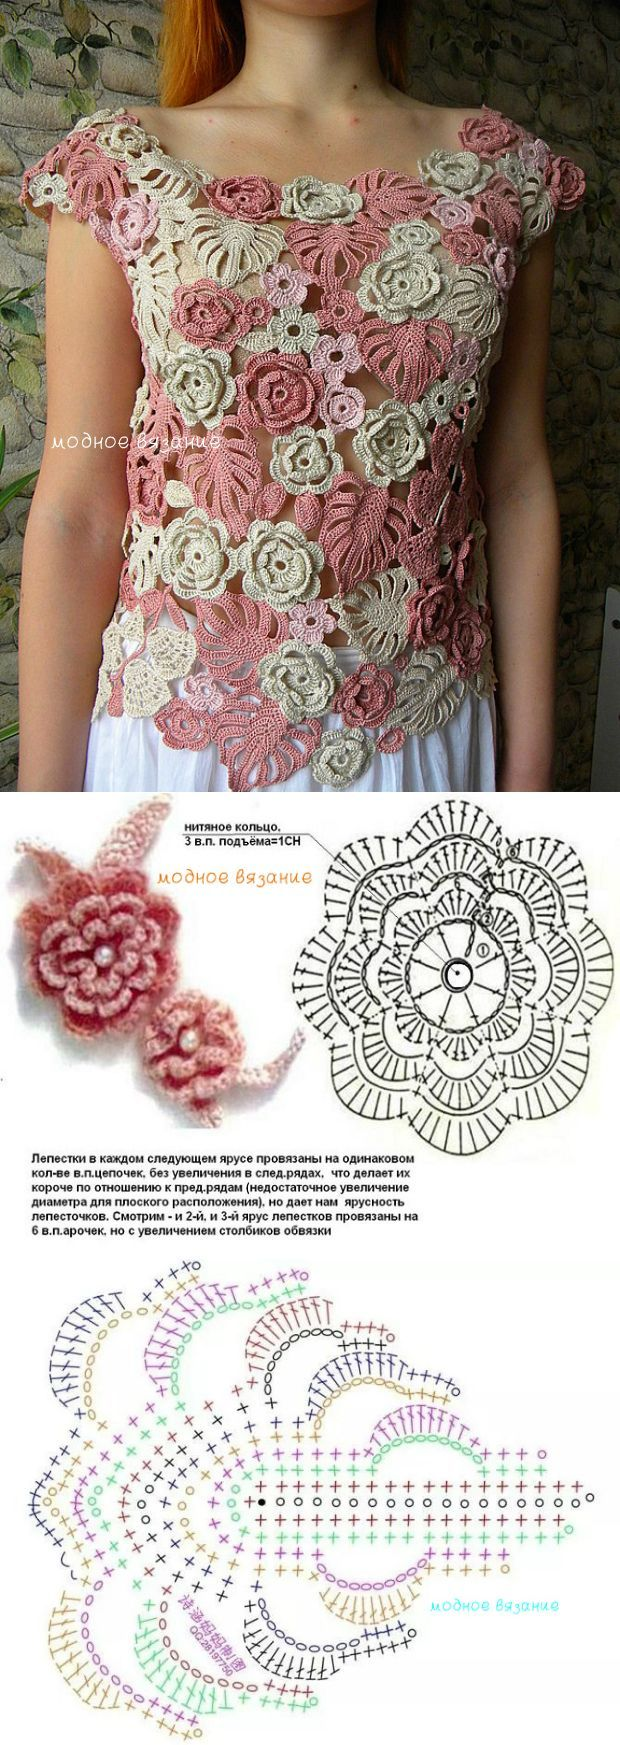 Кофточка *Кремовые розы* - Модное вязание [] #<br/> # #Irish #Crochet,<br/> # #Crochet #Flowers,<br/> # #Posts,<br/> # #Crochet #Patterns,<br/> # #Photography,<br/> # #Knitting,<br/> # #Blusas #Tejidas,<br/> # #Leaf,<br/> # #Tissue<br/>